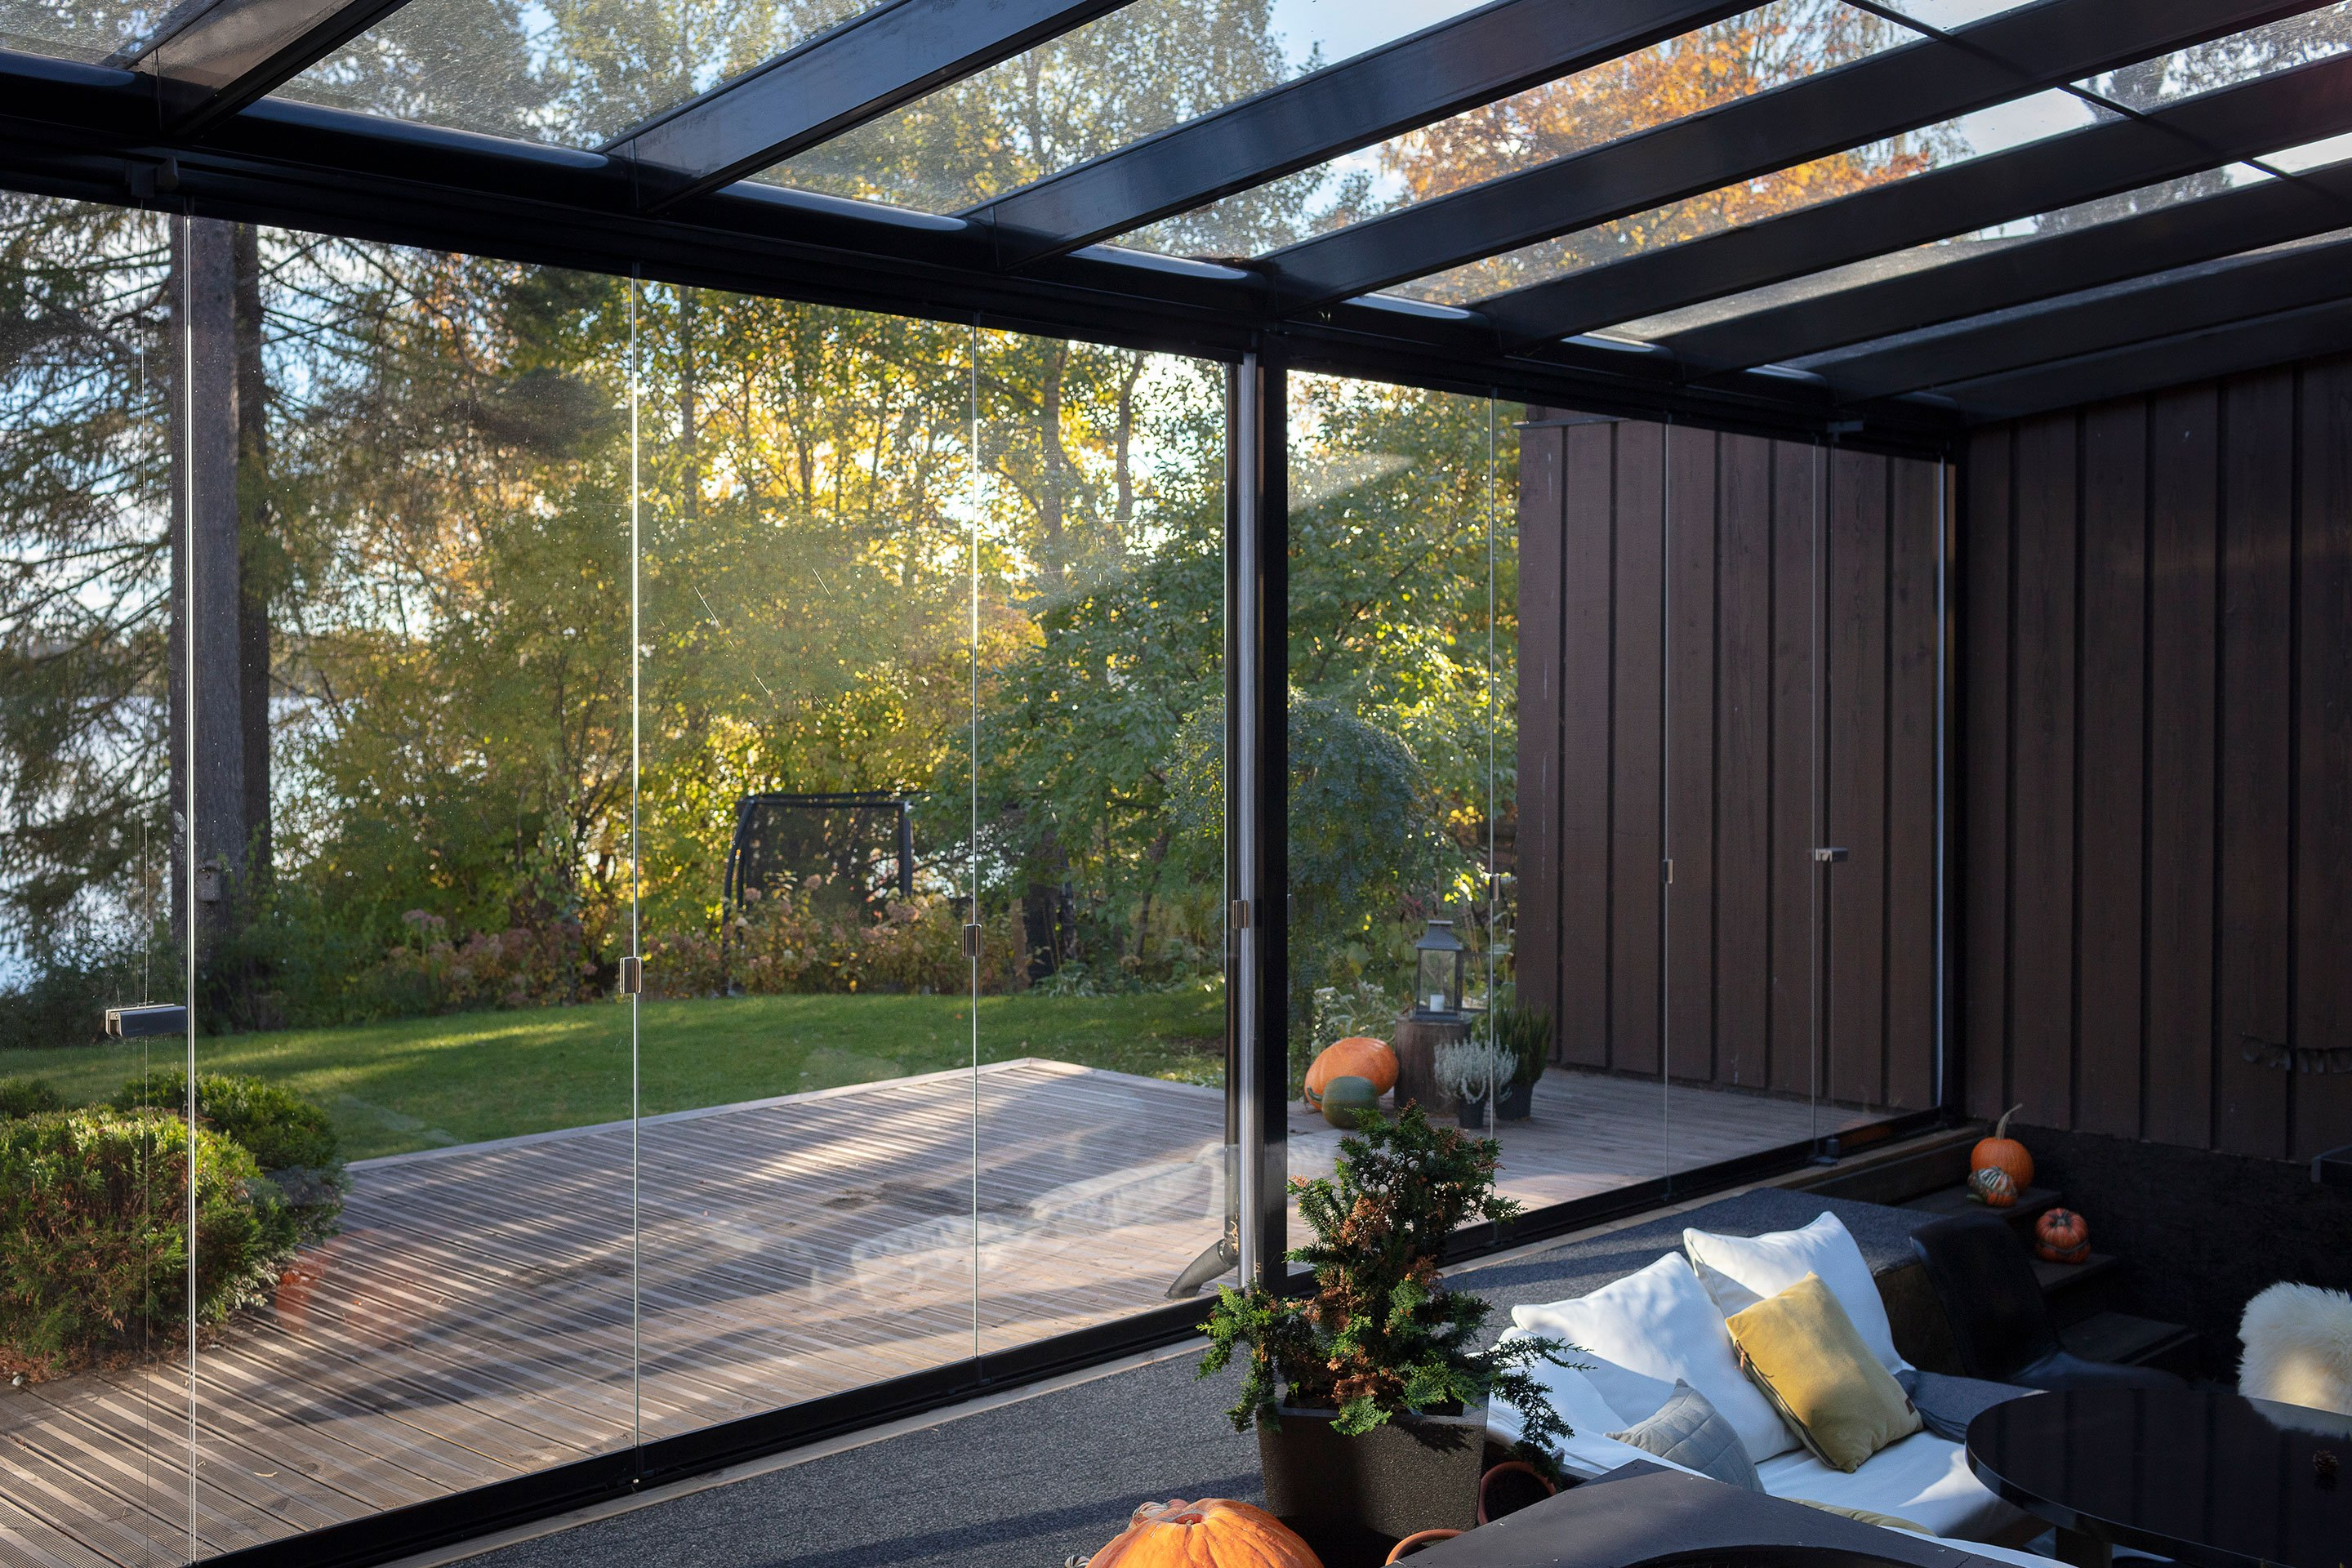 patio cover, aluminium patio cover, glass patio cover, outdoor living space, aluminum patio cover, sun deck, covered deck, patio awning, porch awning, awning